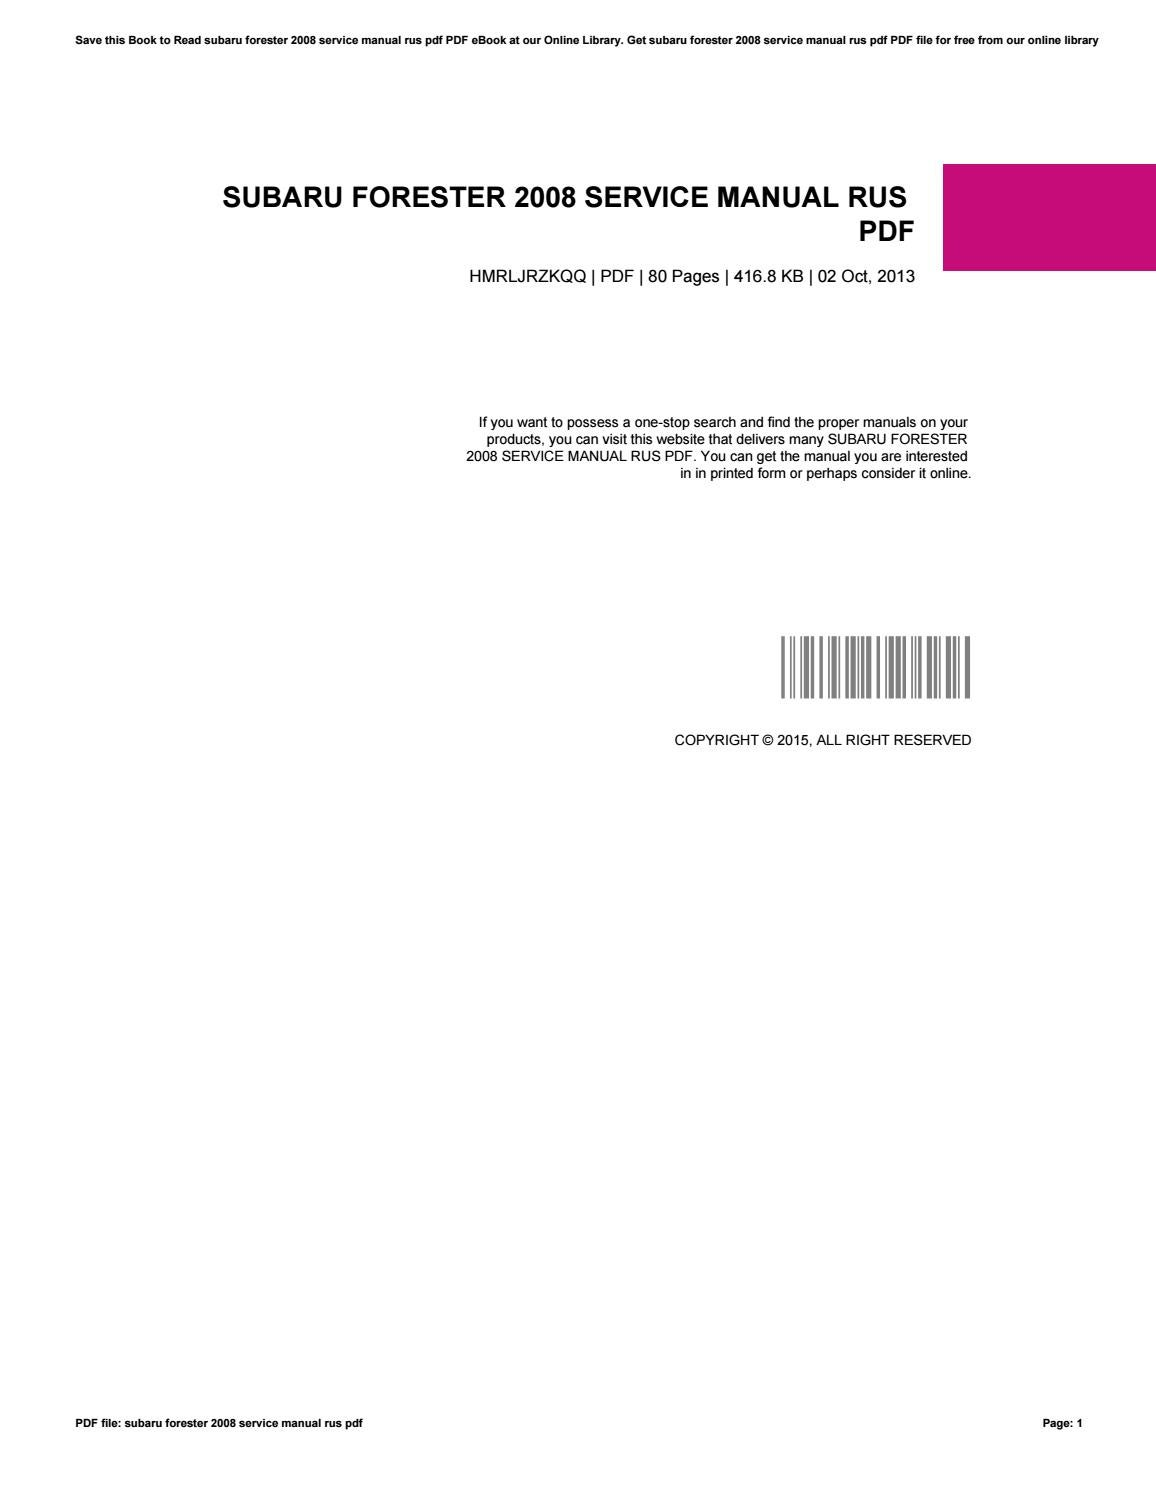 ... Array - subaru forester 2008 service manual rus pdf by debrabronson4581  issuu rh issuu ...